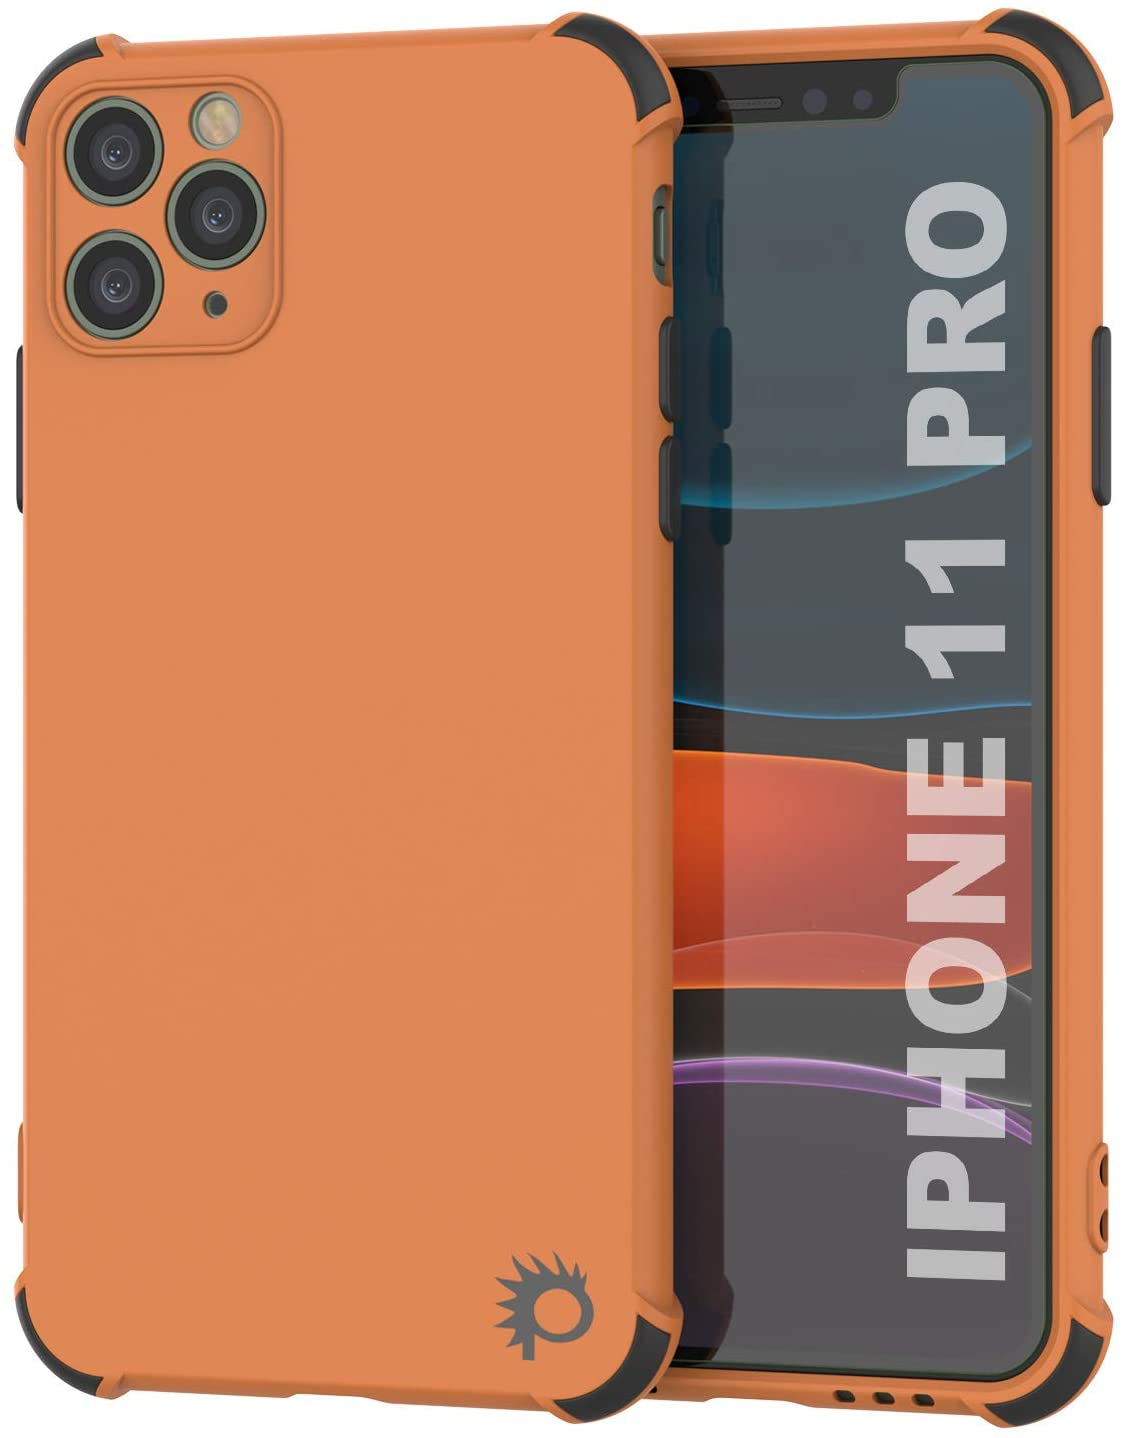 Punkcase Protective & Lightweight TPU Case [Sunshine Series] for iPhone 11 Pro [Orange]